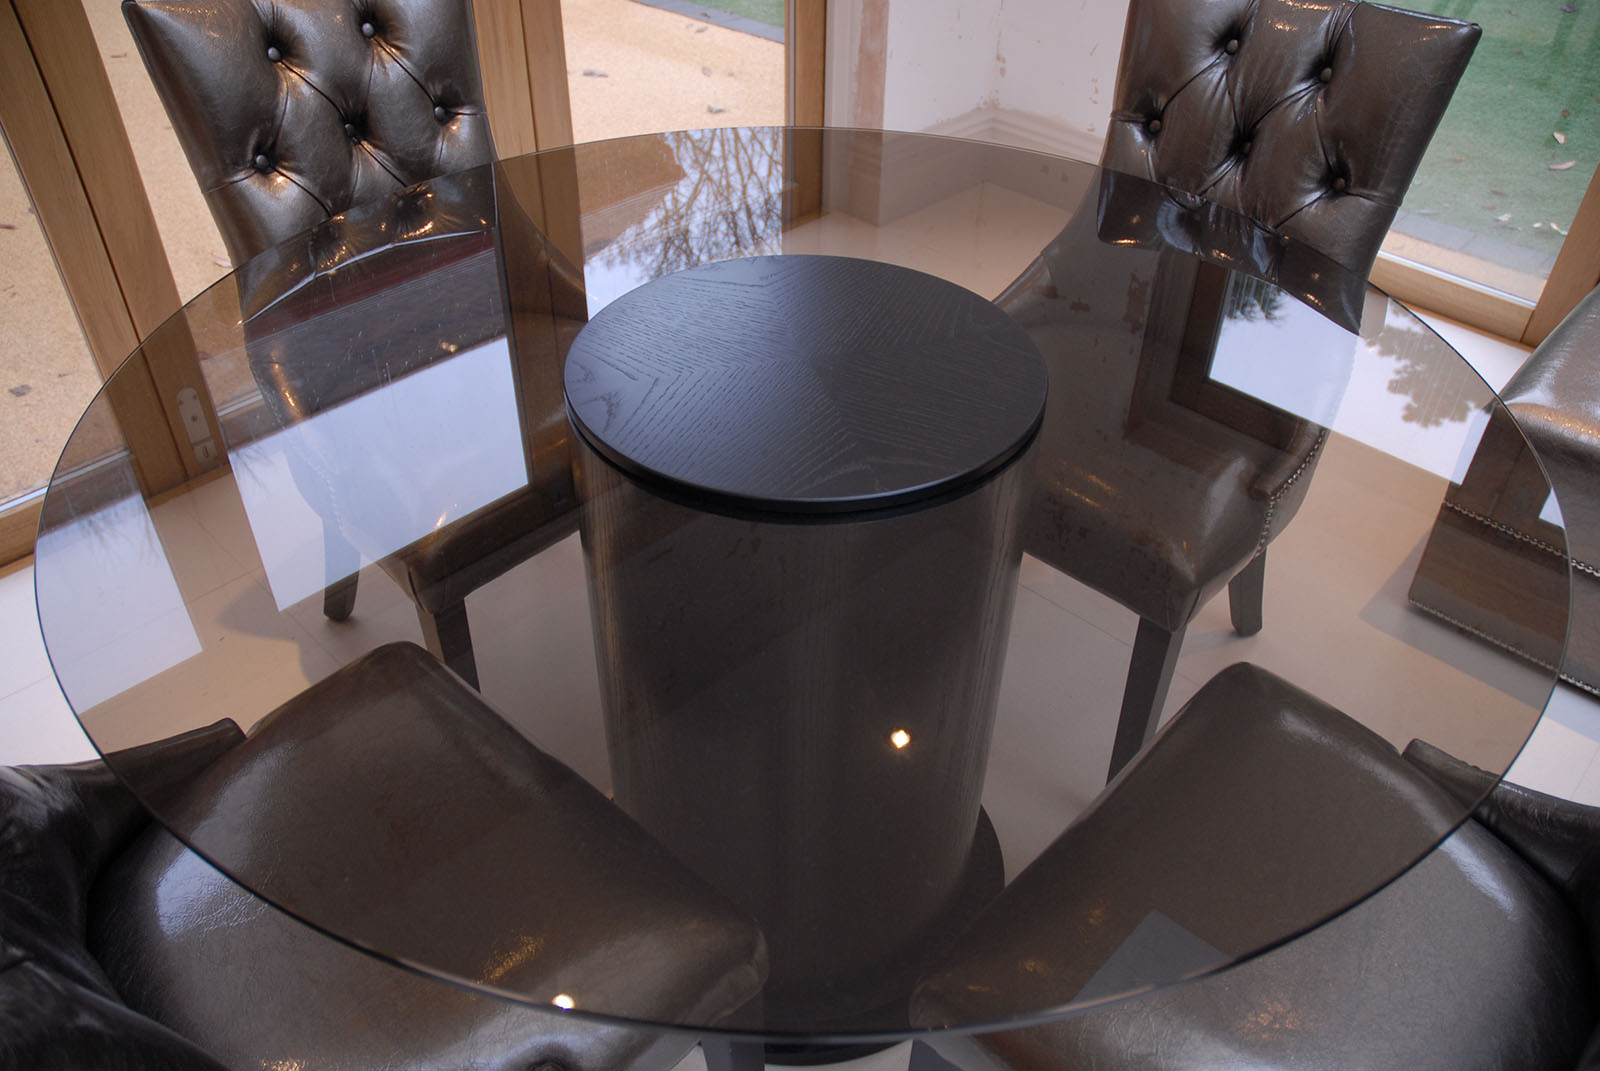 Bespoke tables designed handmade to order Bespoke glass furniture